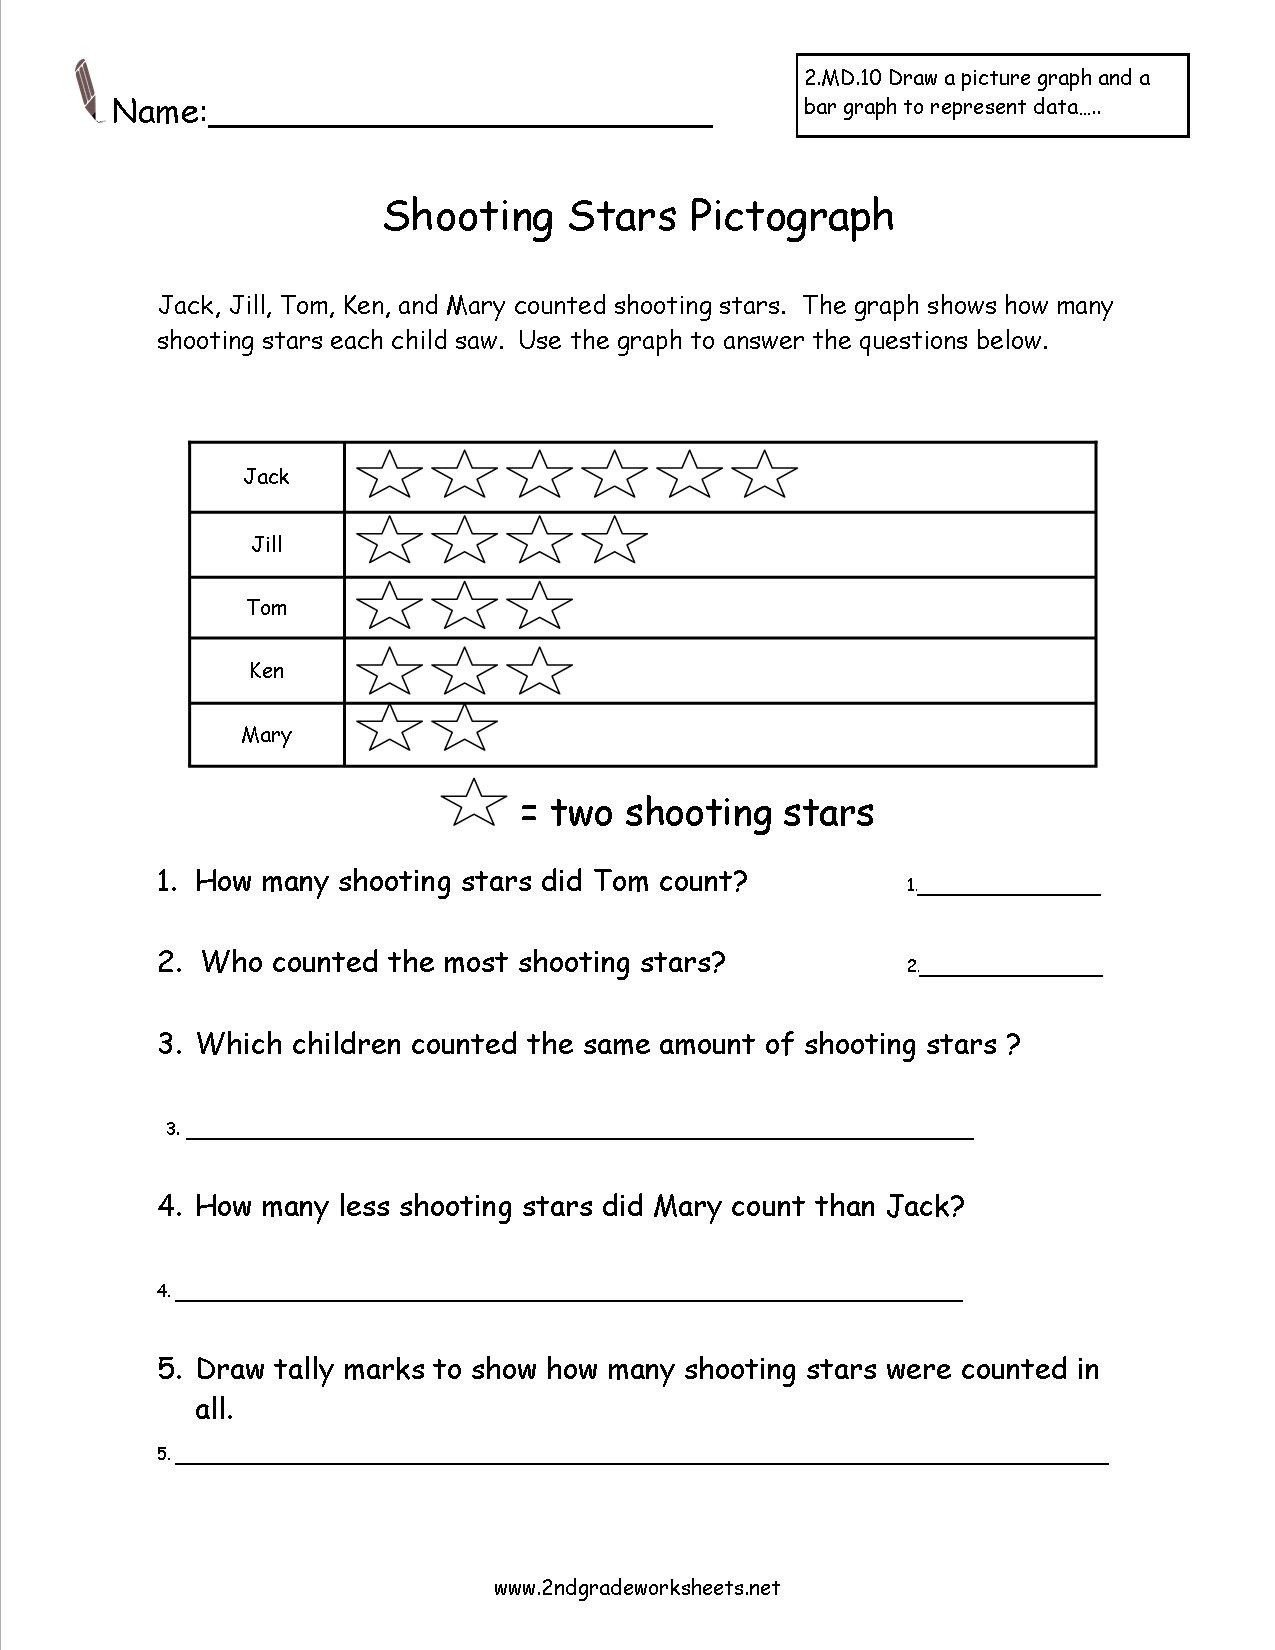 Frequency Table Worksheets 3rd Grade 20 Frequency Table Worksheets 3rd Grade